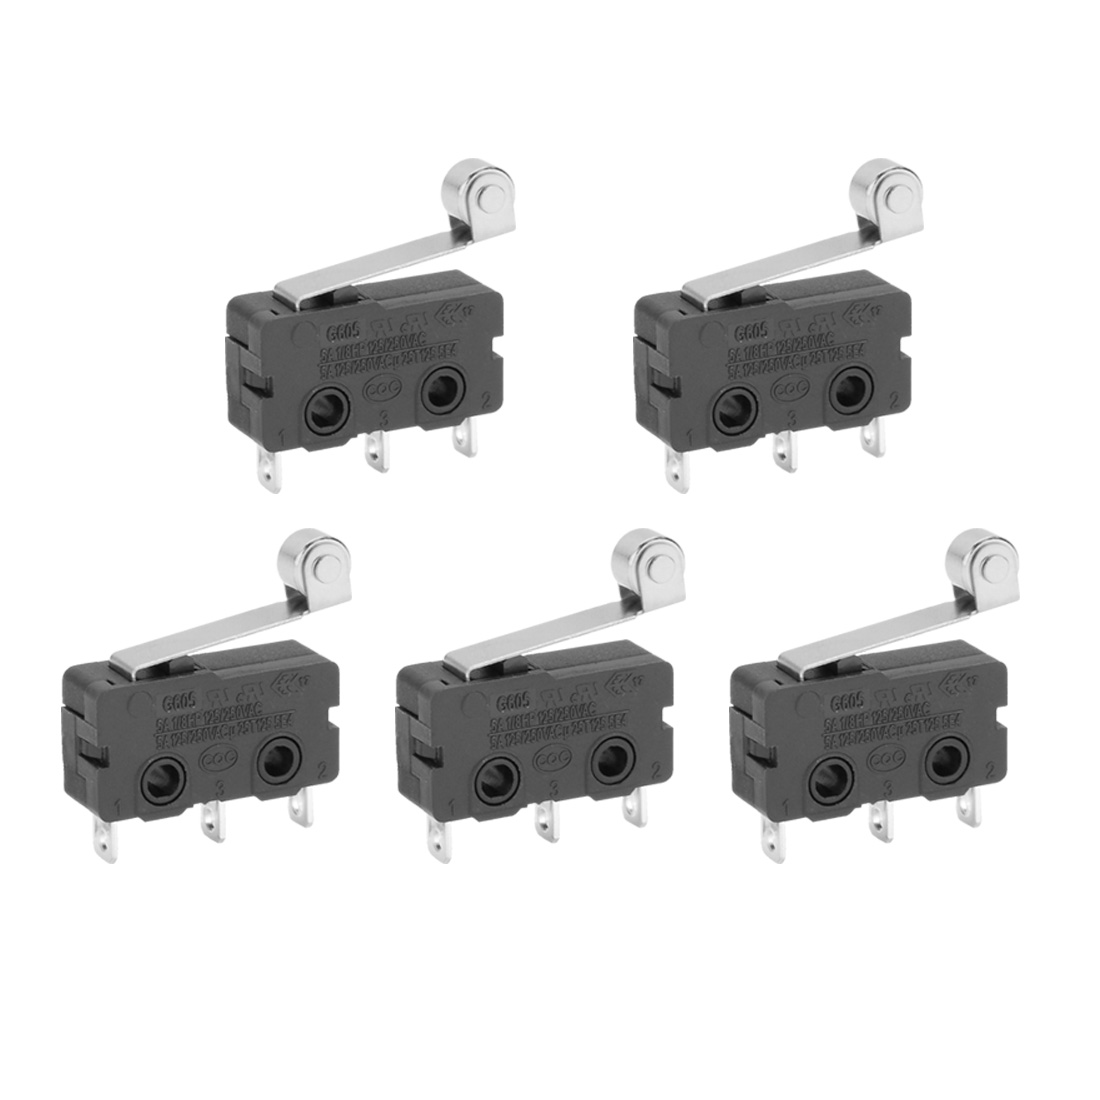 5 Pcs G606-150S06A Micro Limit Switch Roller Arm Subminiature SPDT Snap Action - image 3 of 3